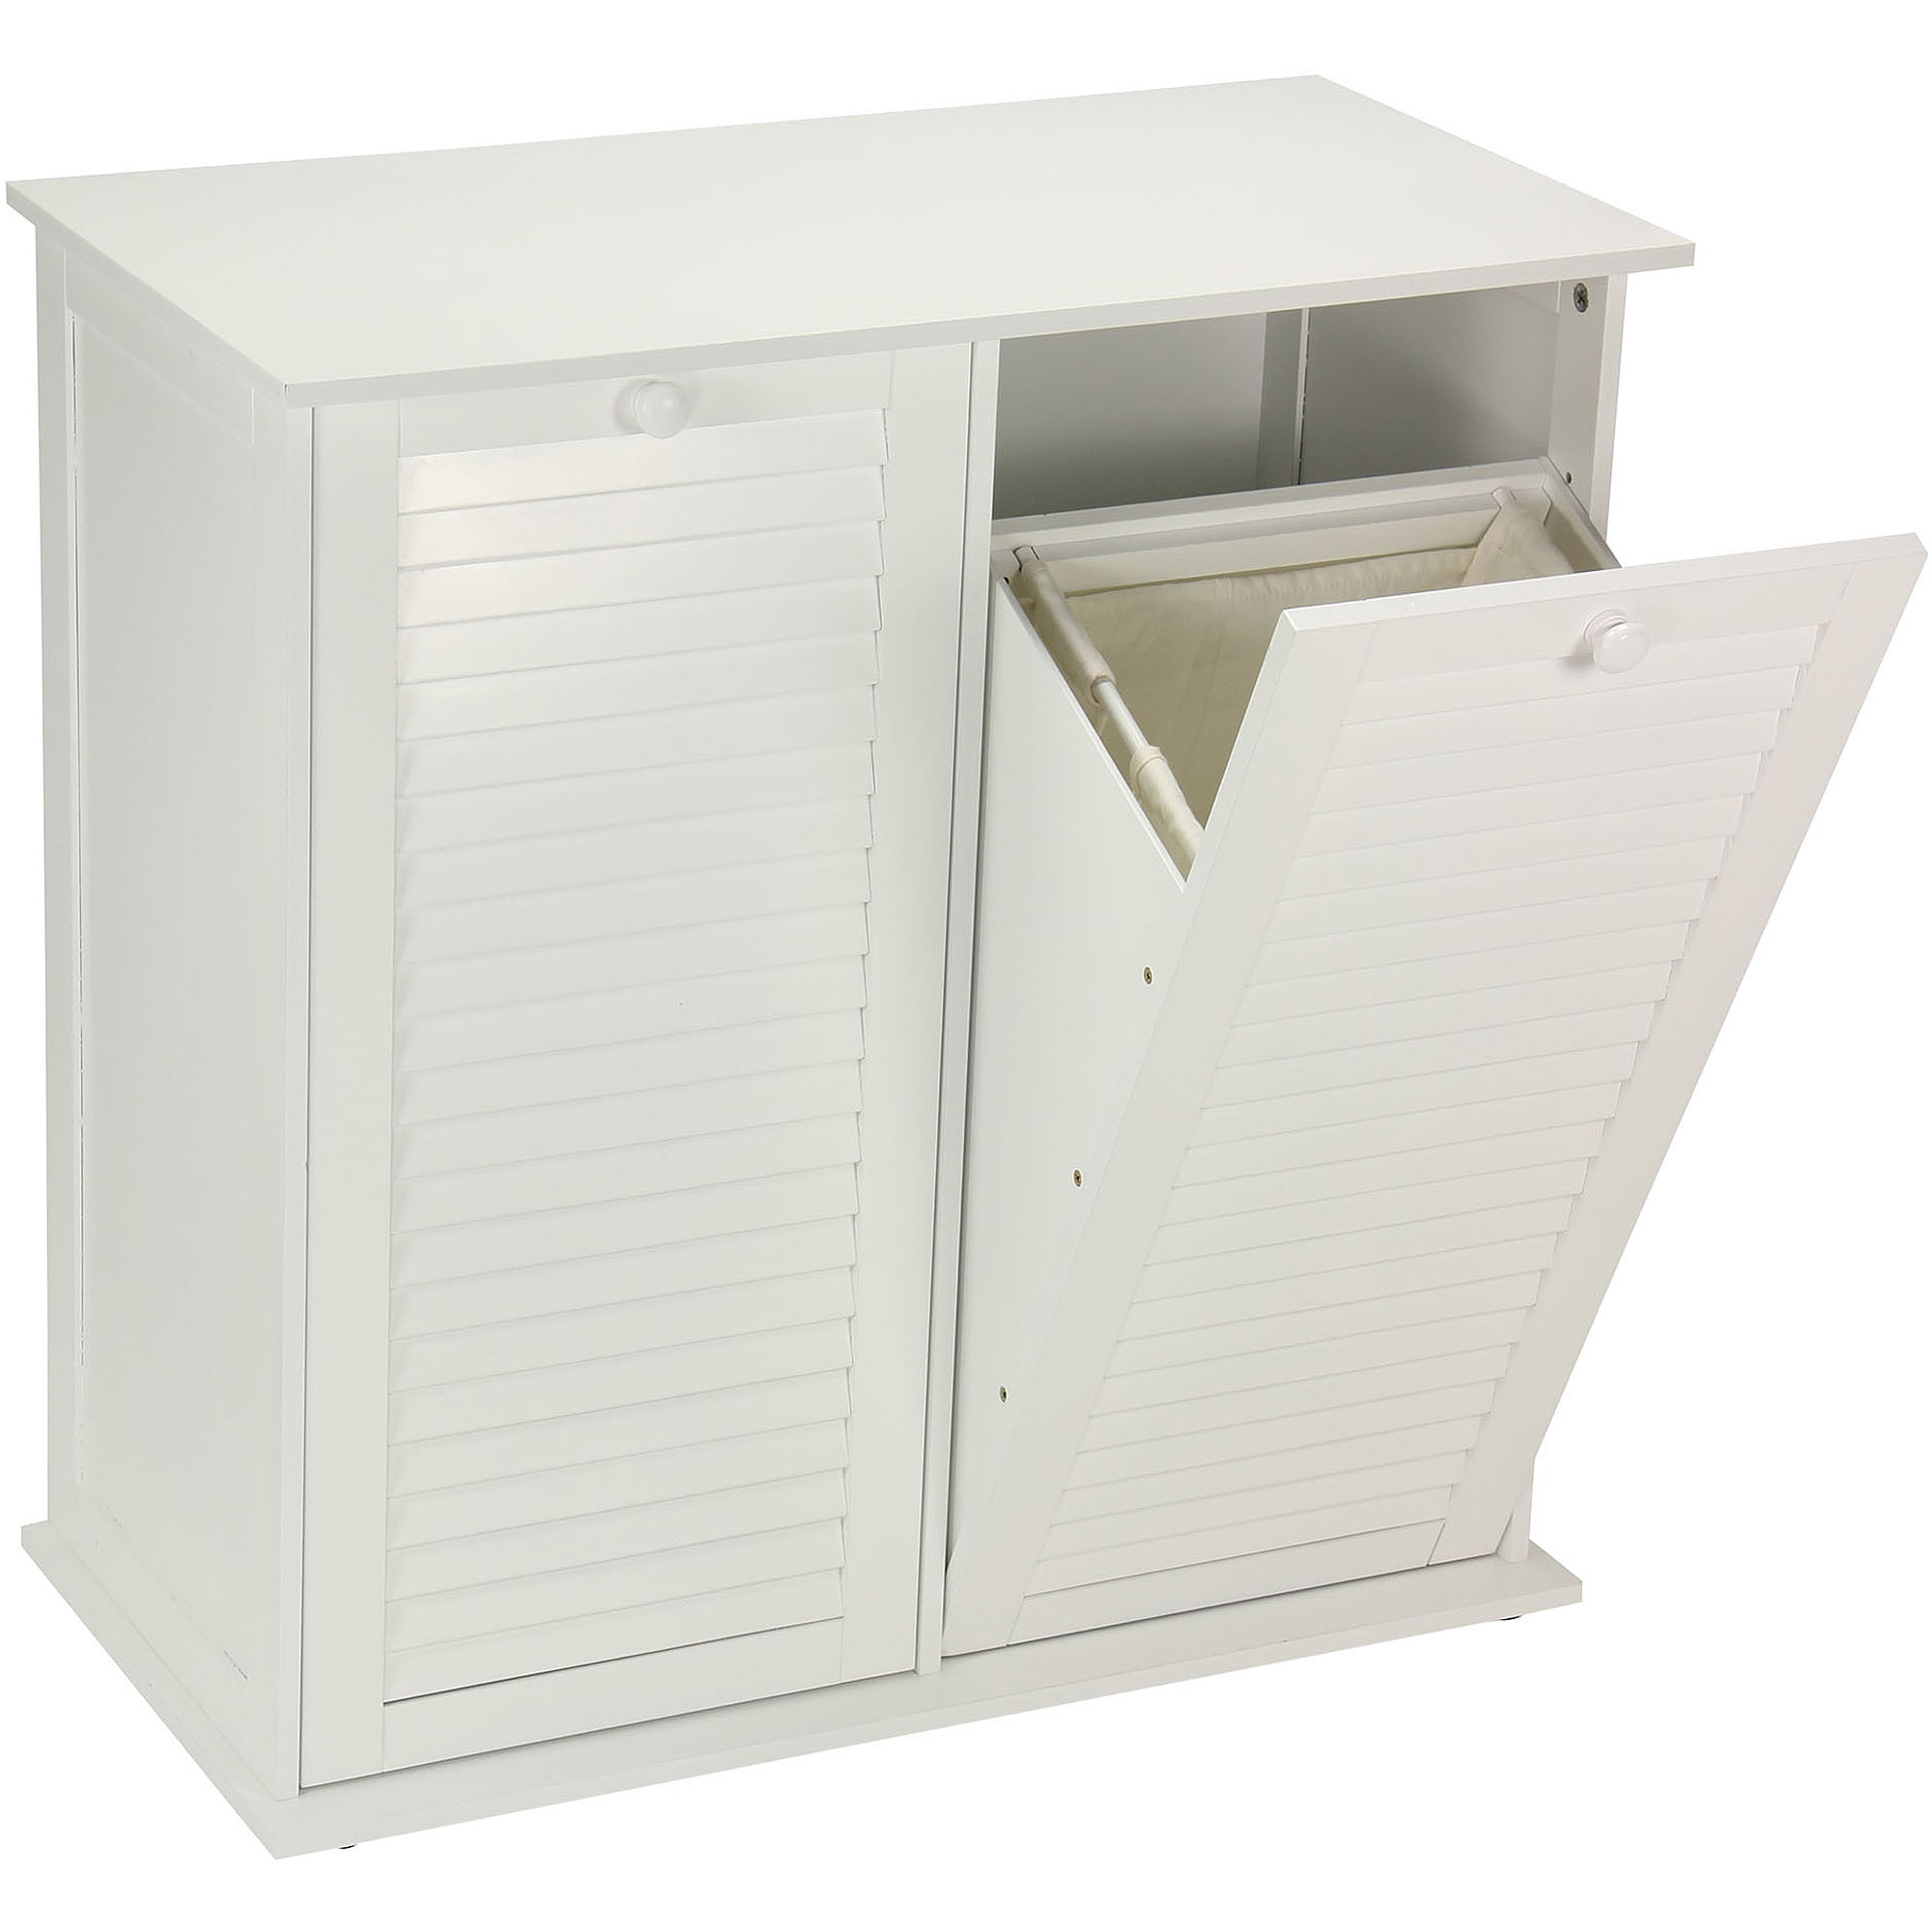 Household Essentials Tilt Out Laundry Sorter Cabinet With Shutter Front